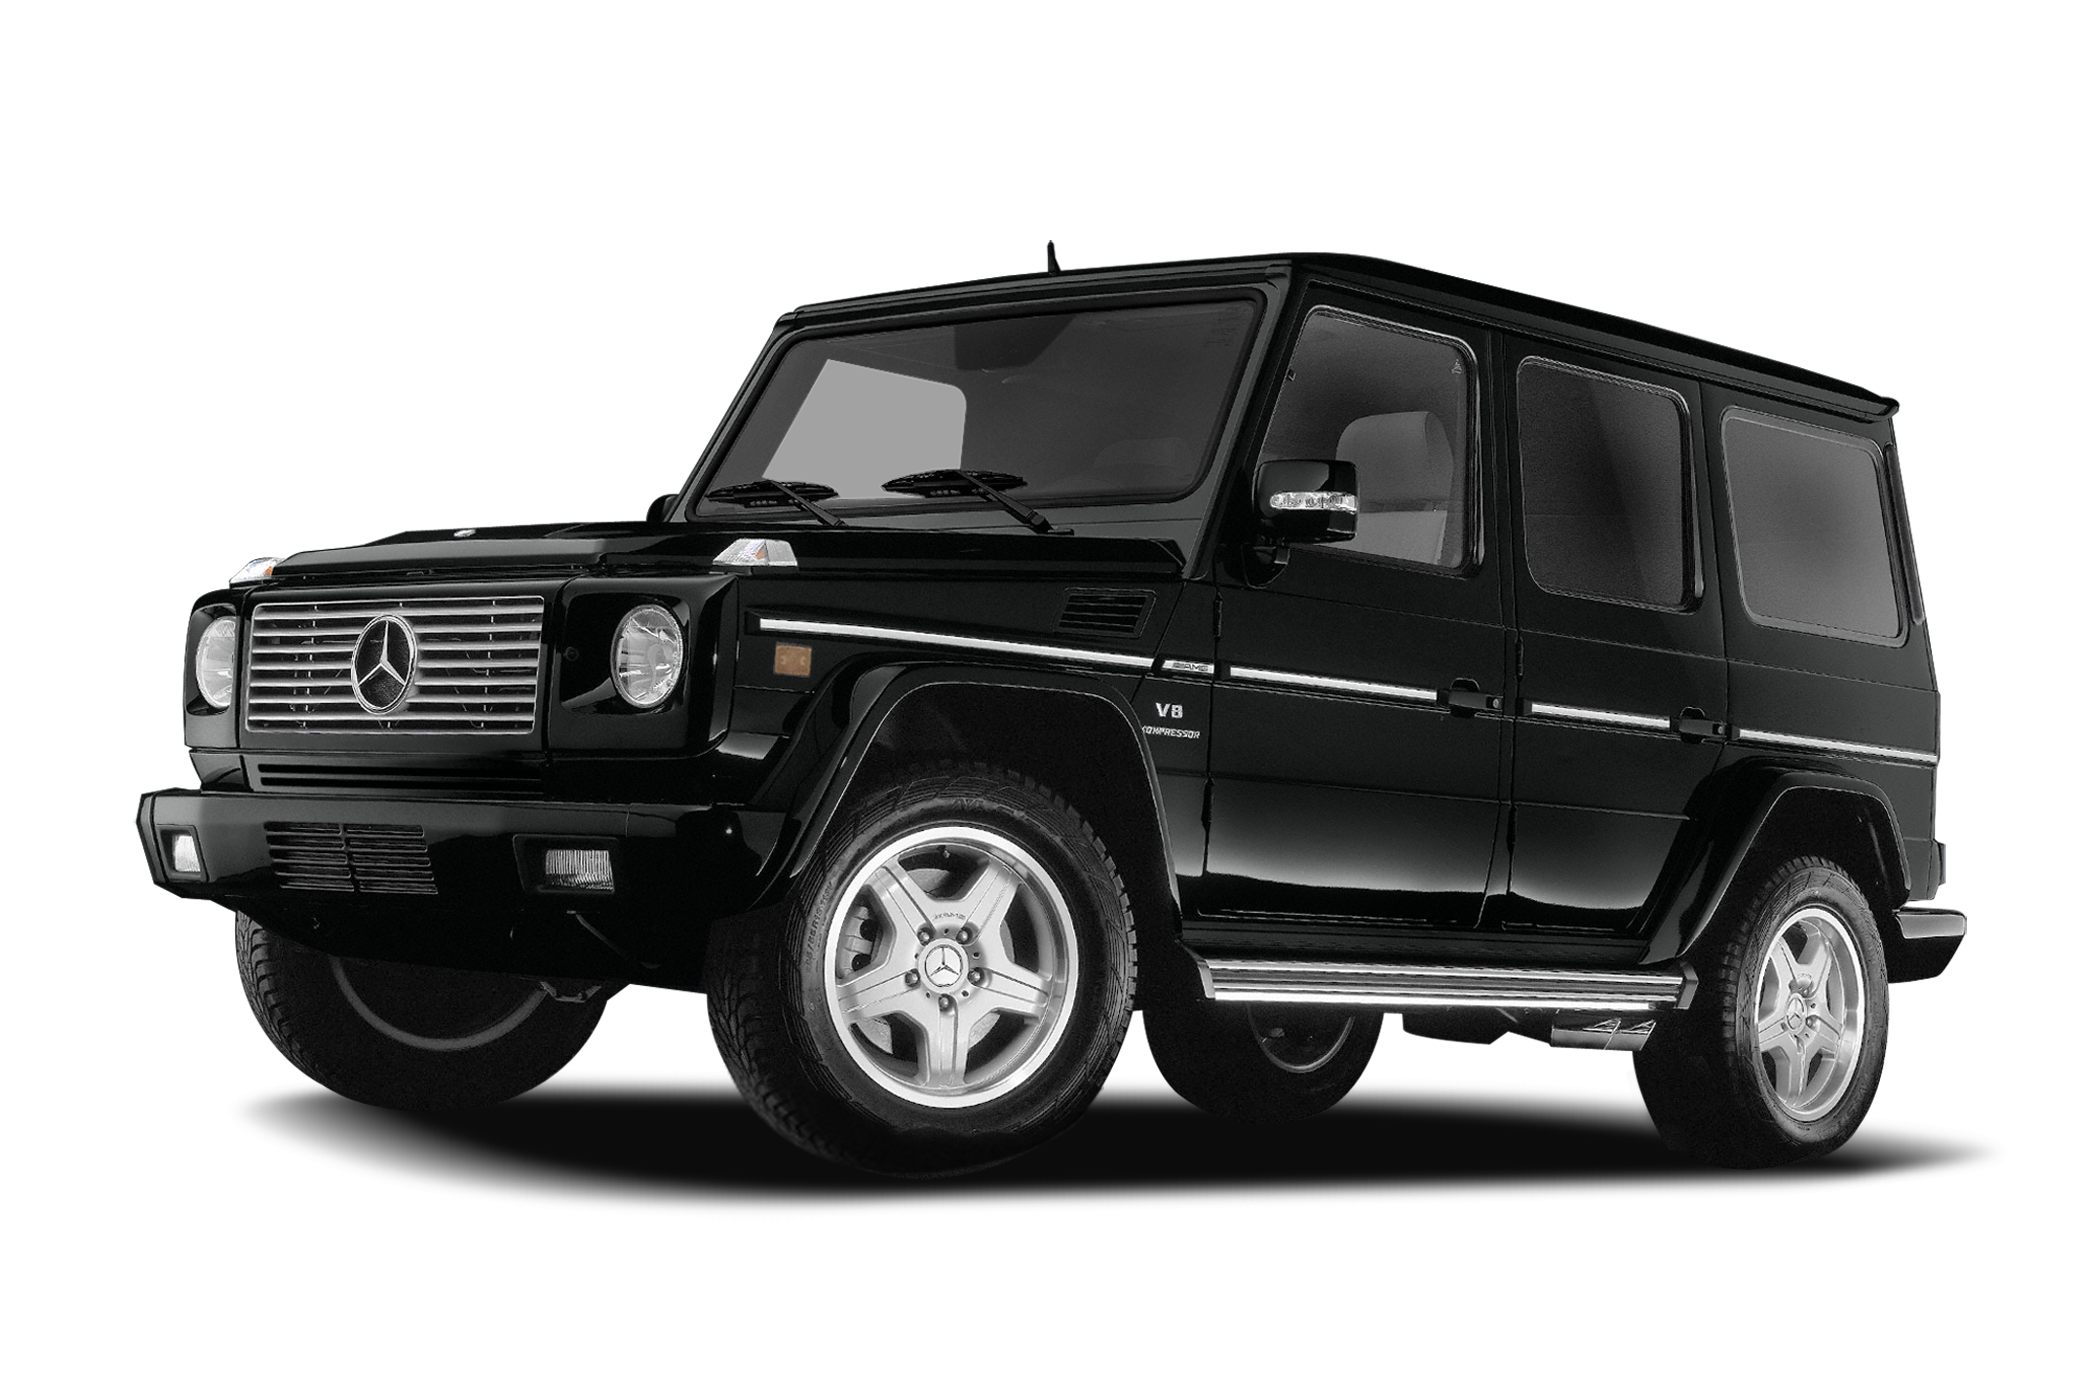 2007 Mercedes Benz G Class Base G 55 AMG 4dr 4x4 Pricing and Options